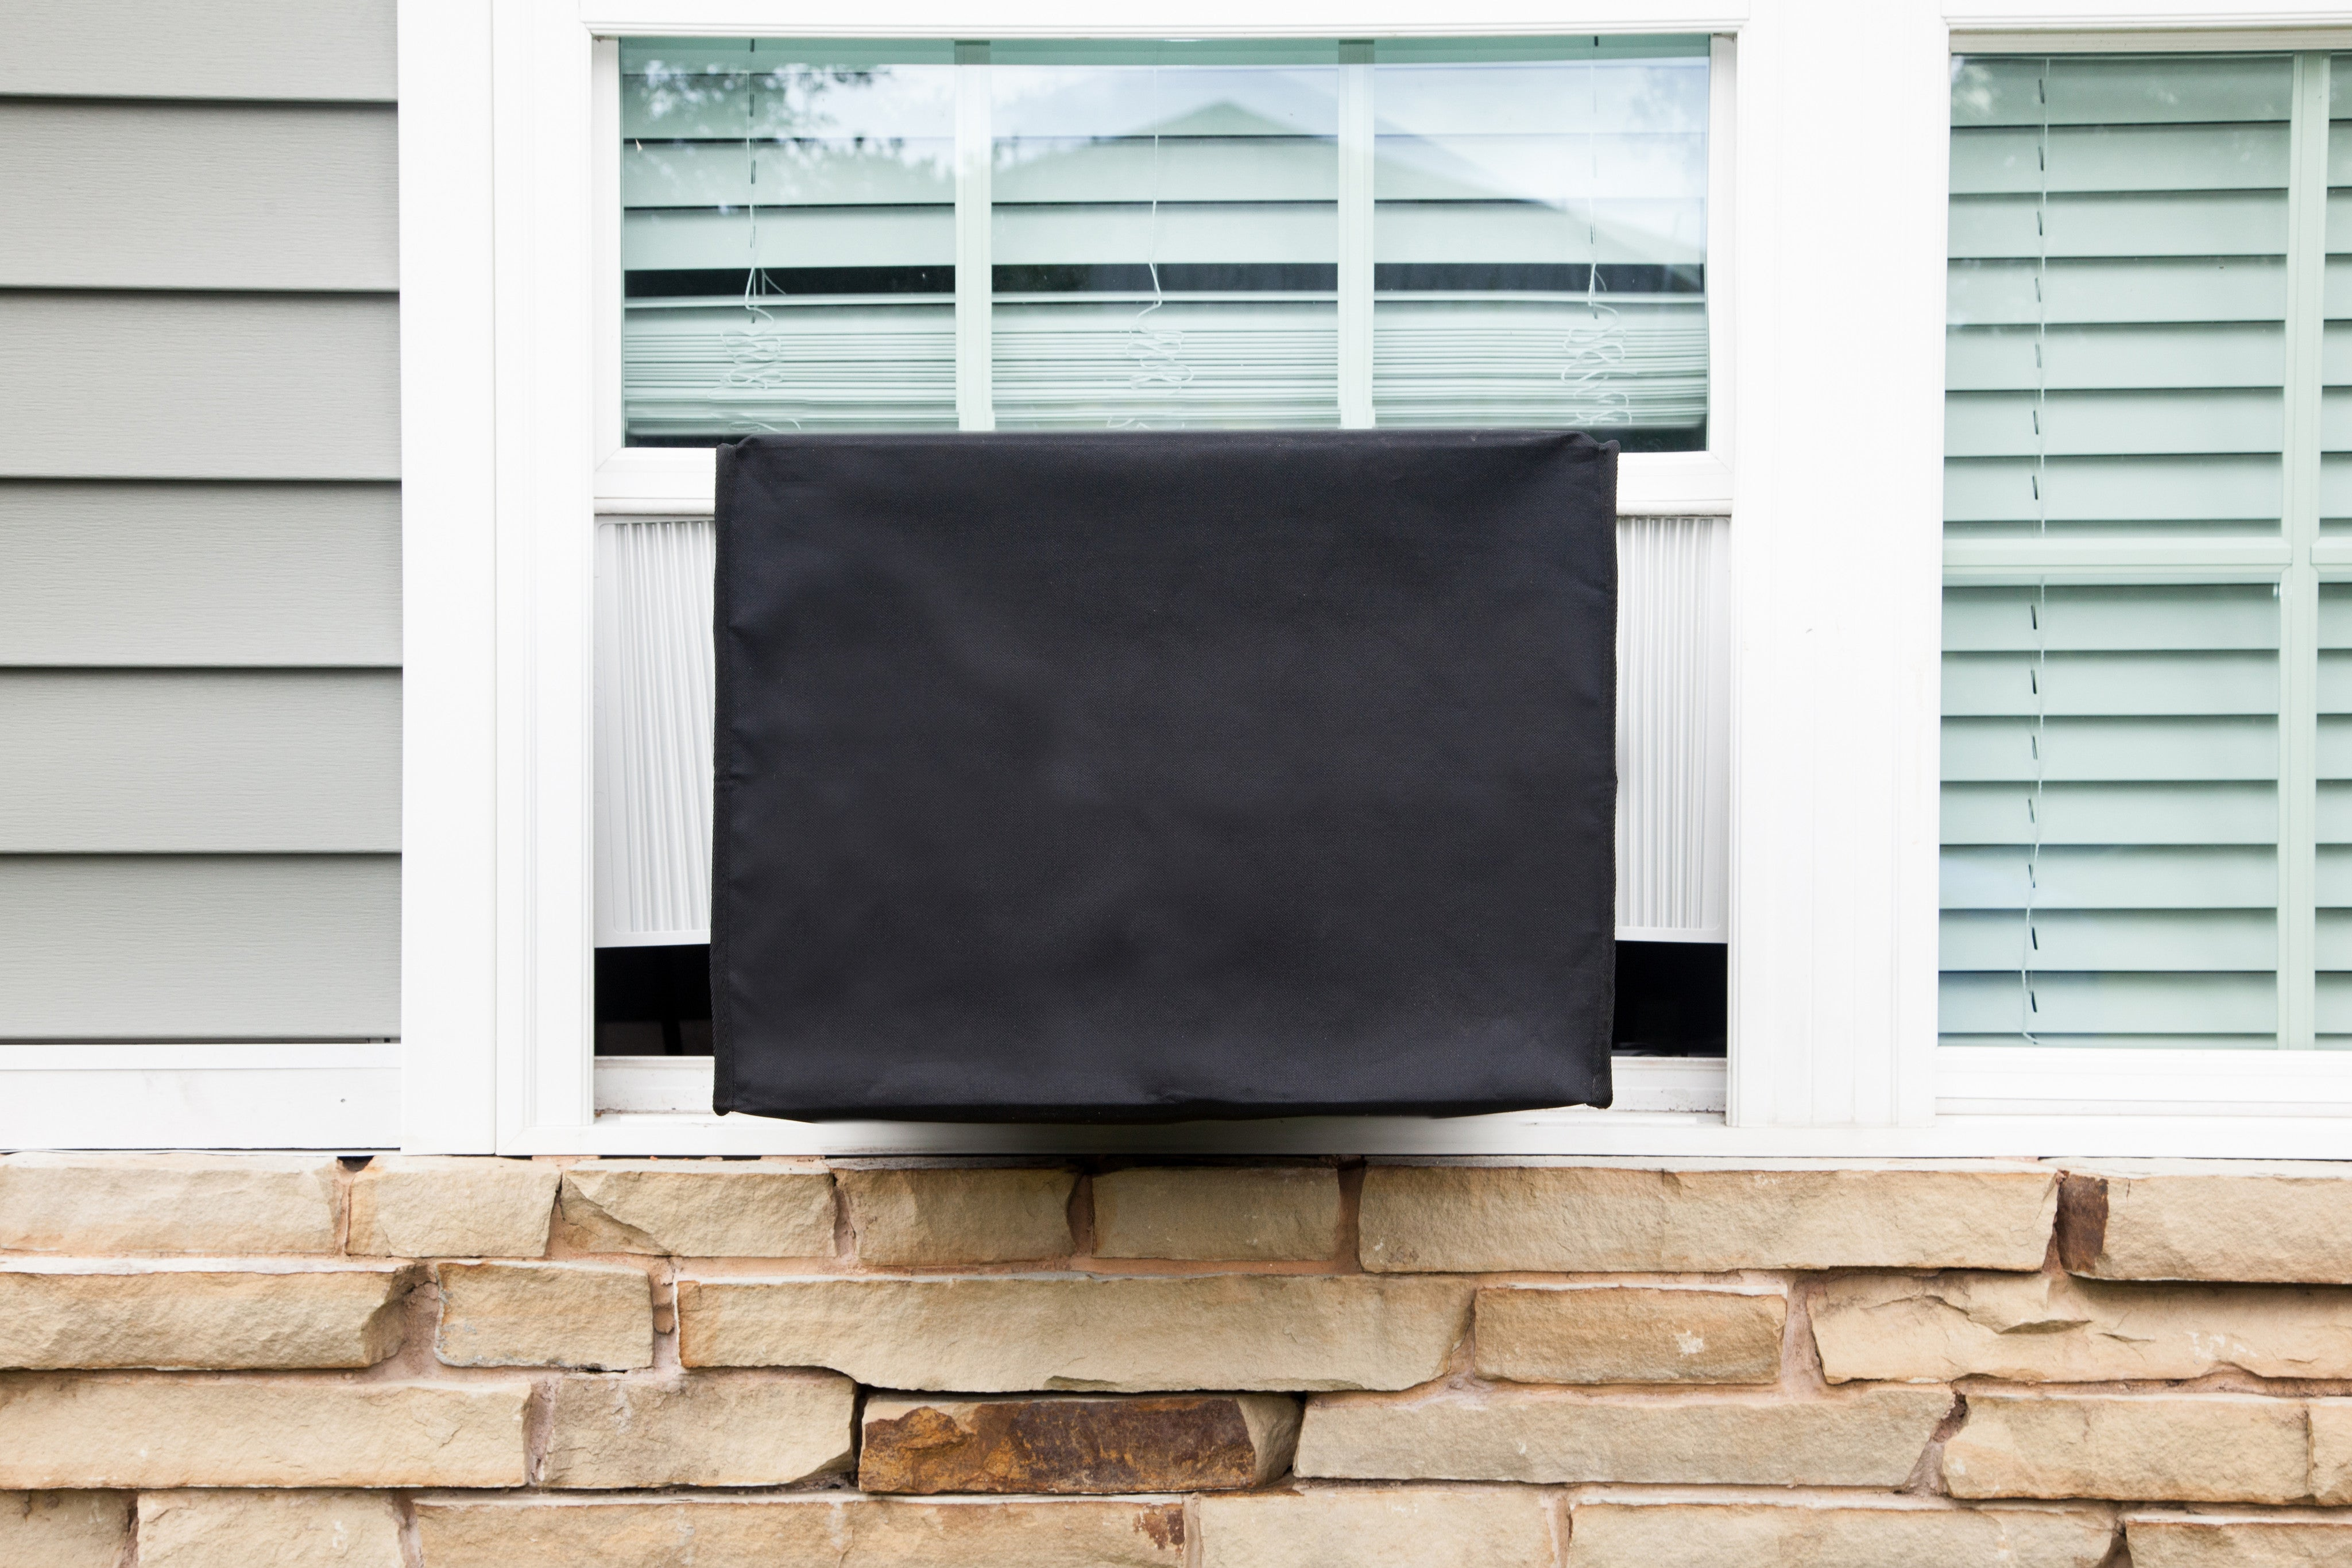 Sturdy Covers AC Defender Window Unit Winter Cover Black